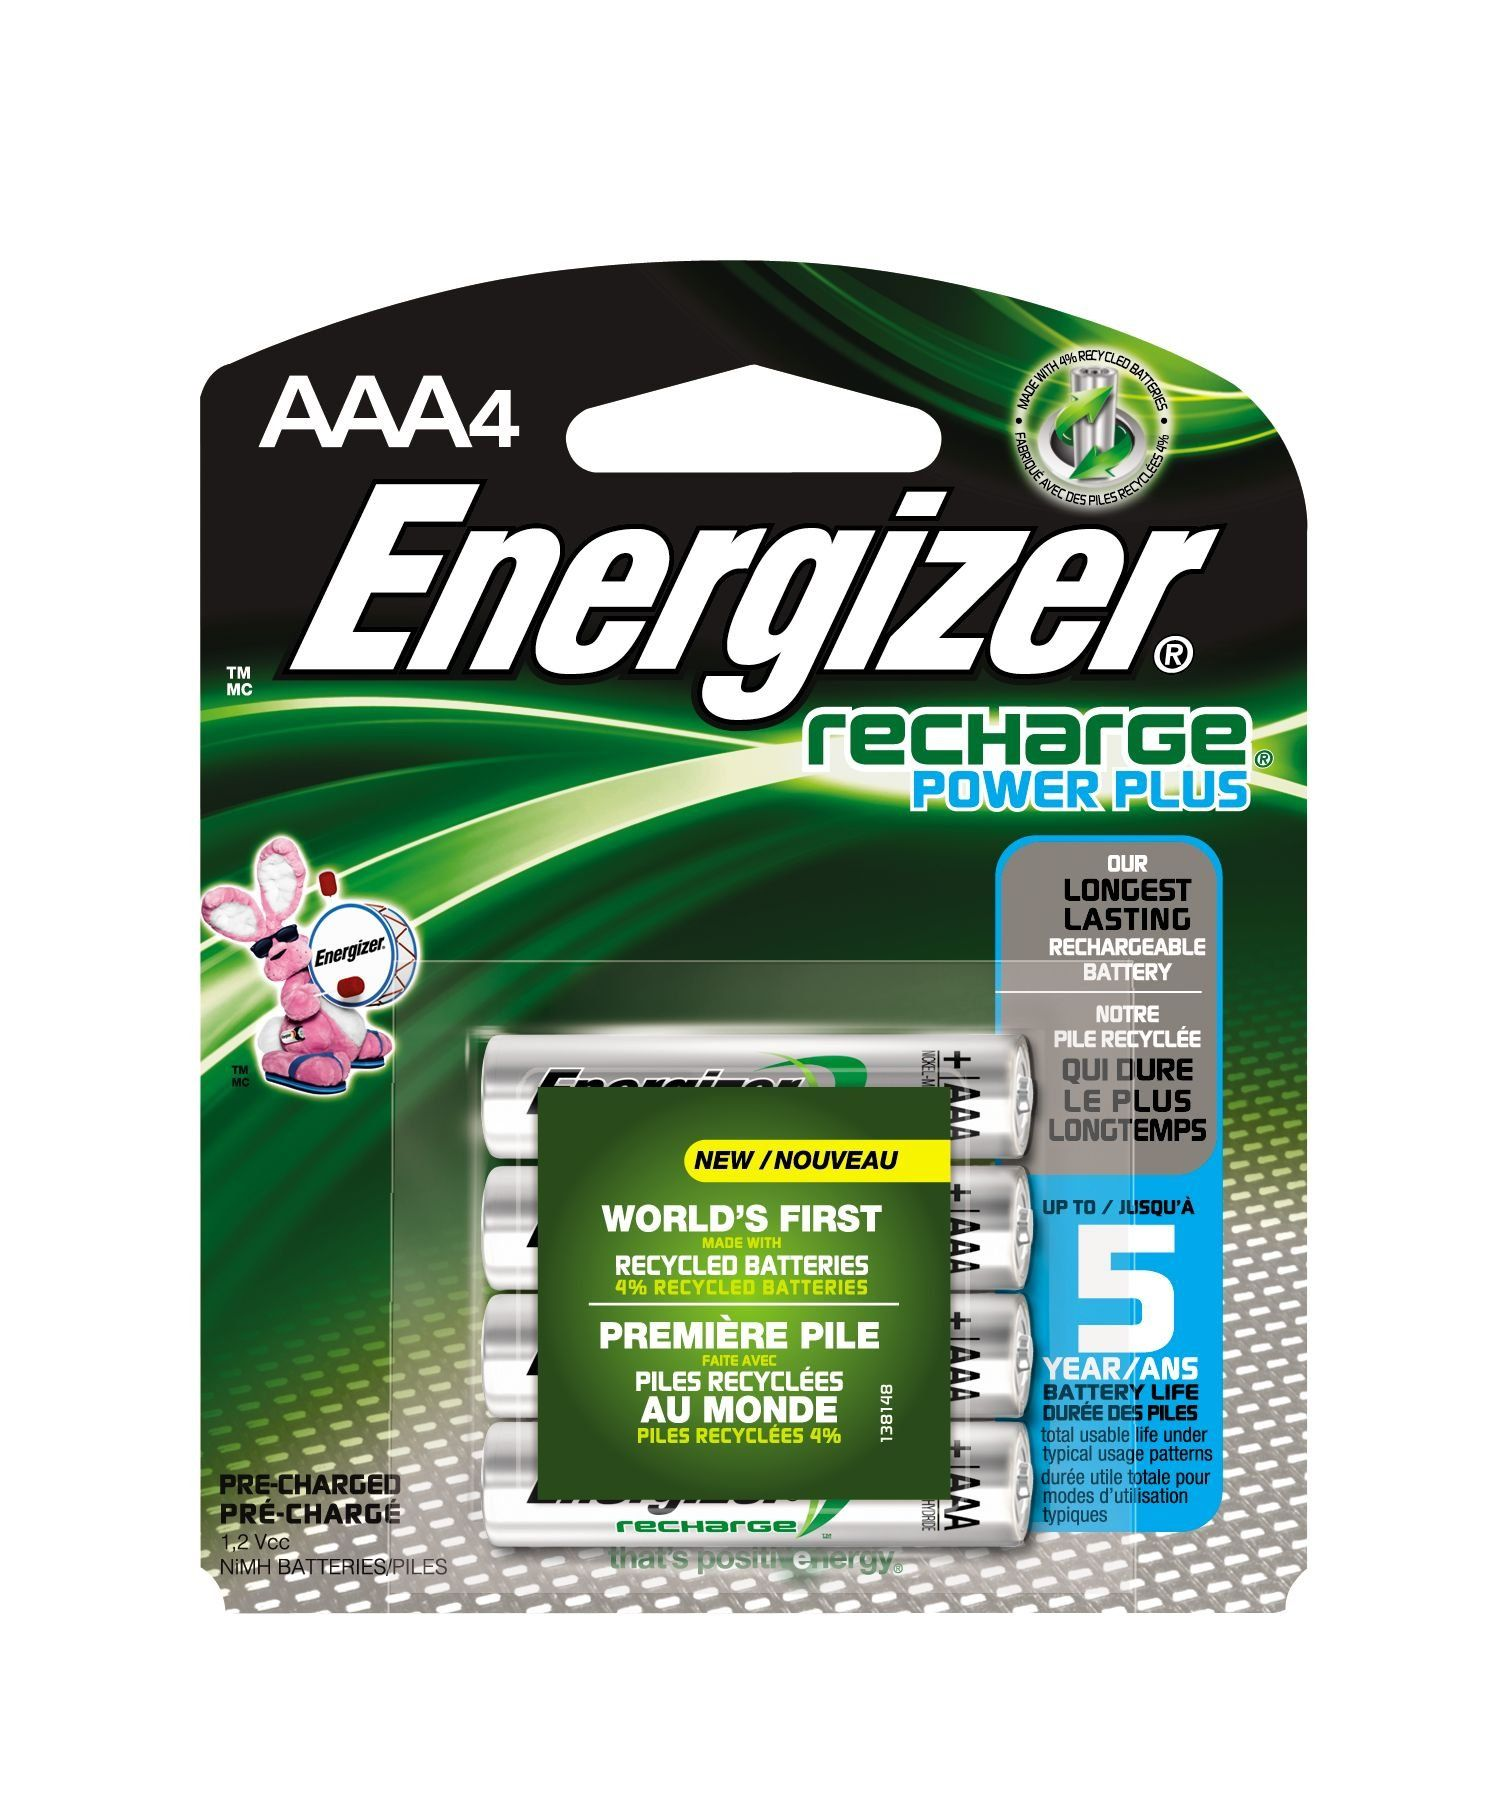 Energizer Evenh12bp4 Recharge Power Plus Aaa 700 Mah Rechargeable Batteries Pre Charged Pack Of 4 Rechargeable Batteries Energizer Batteries